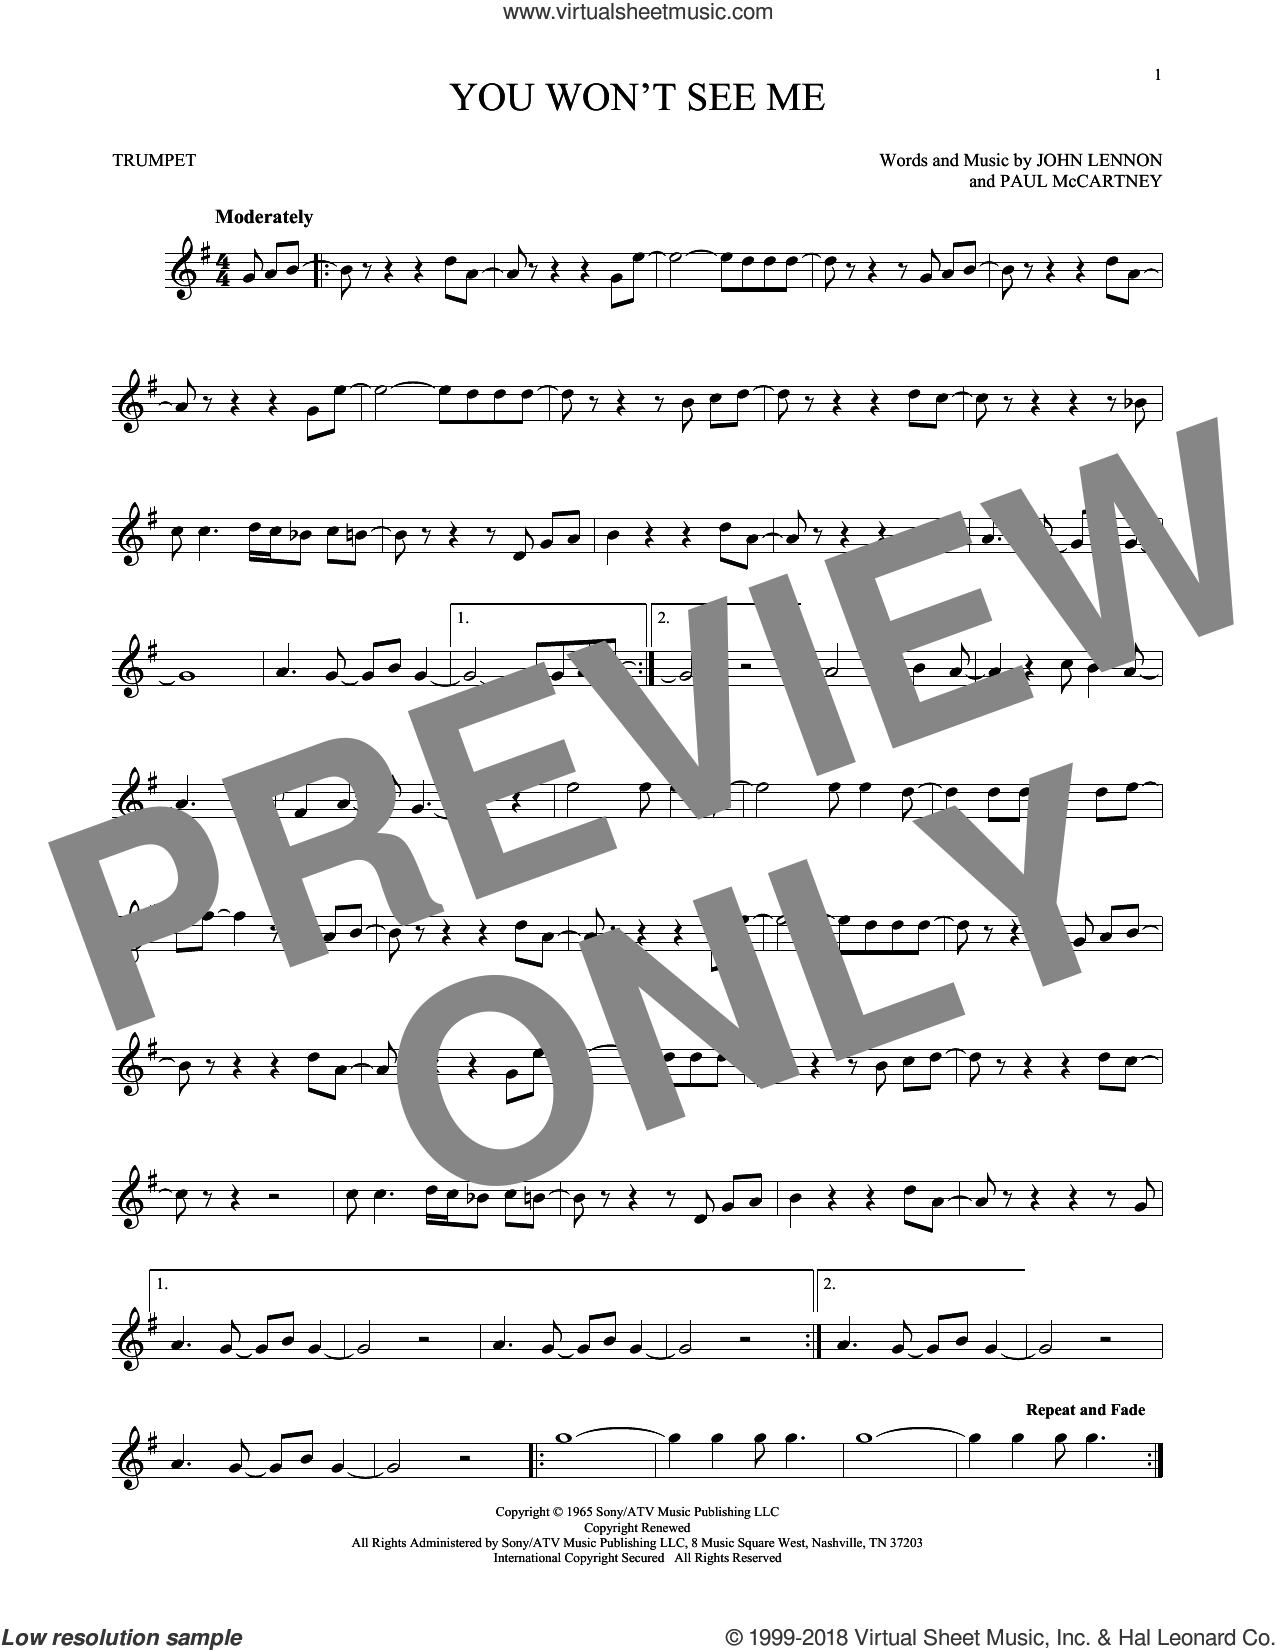 You Won't See Me sheet music for trumpet solo by Paul McCartney, The Beatles and John Lennon. Score Image Preview.